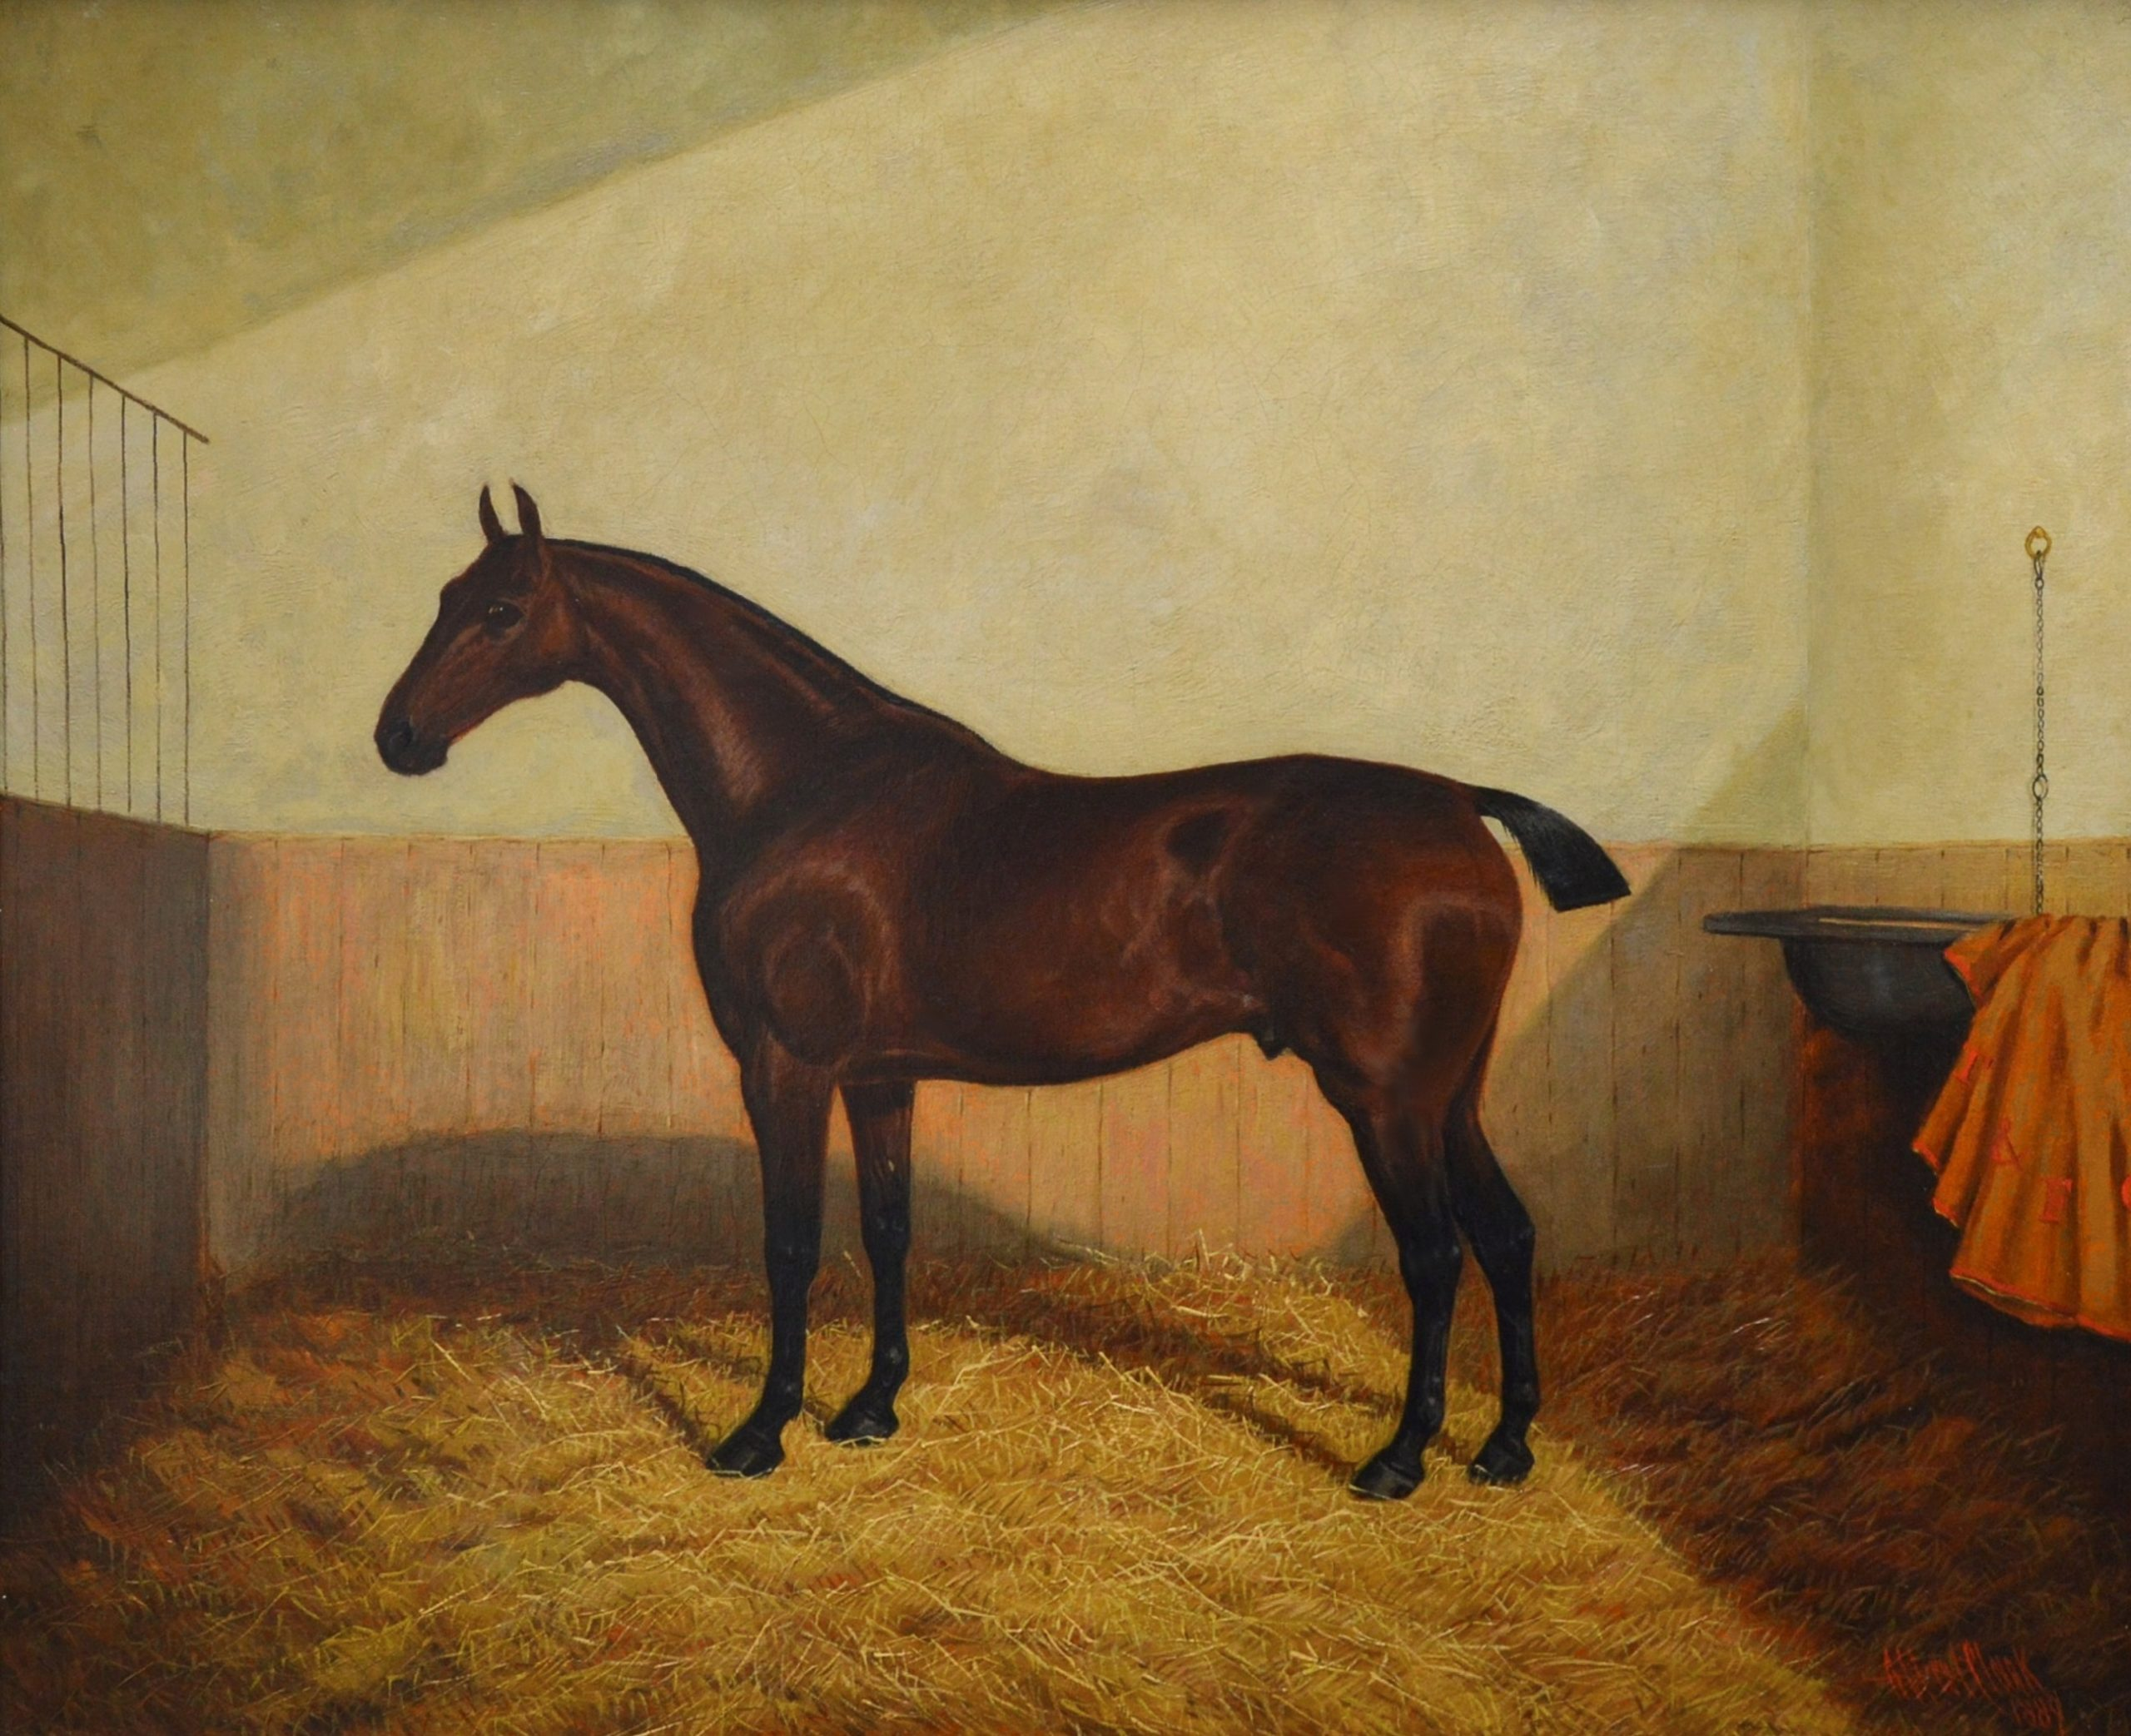 Bay Hunter in a Stable - 19th Century Equine Portrait Oil Painting Image